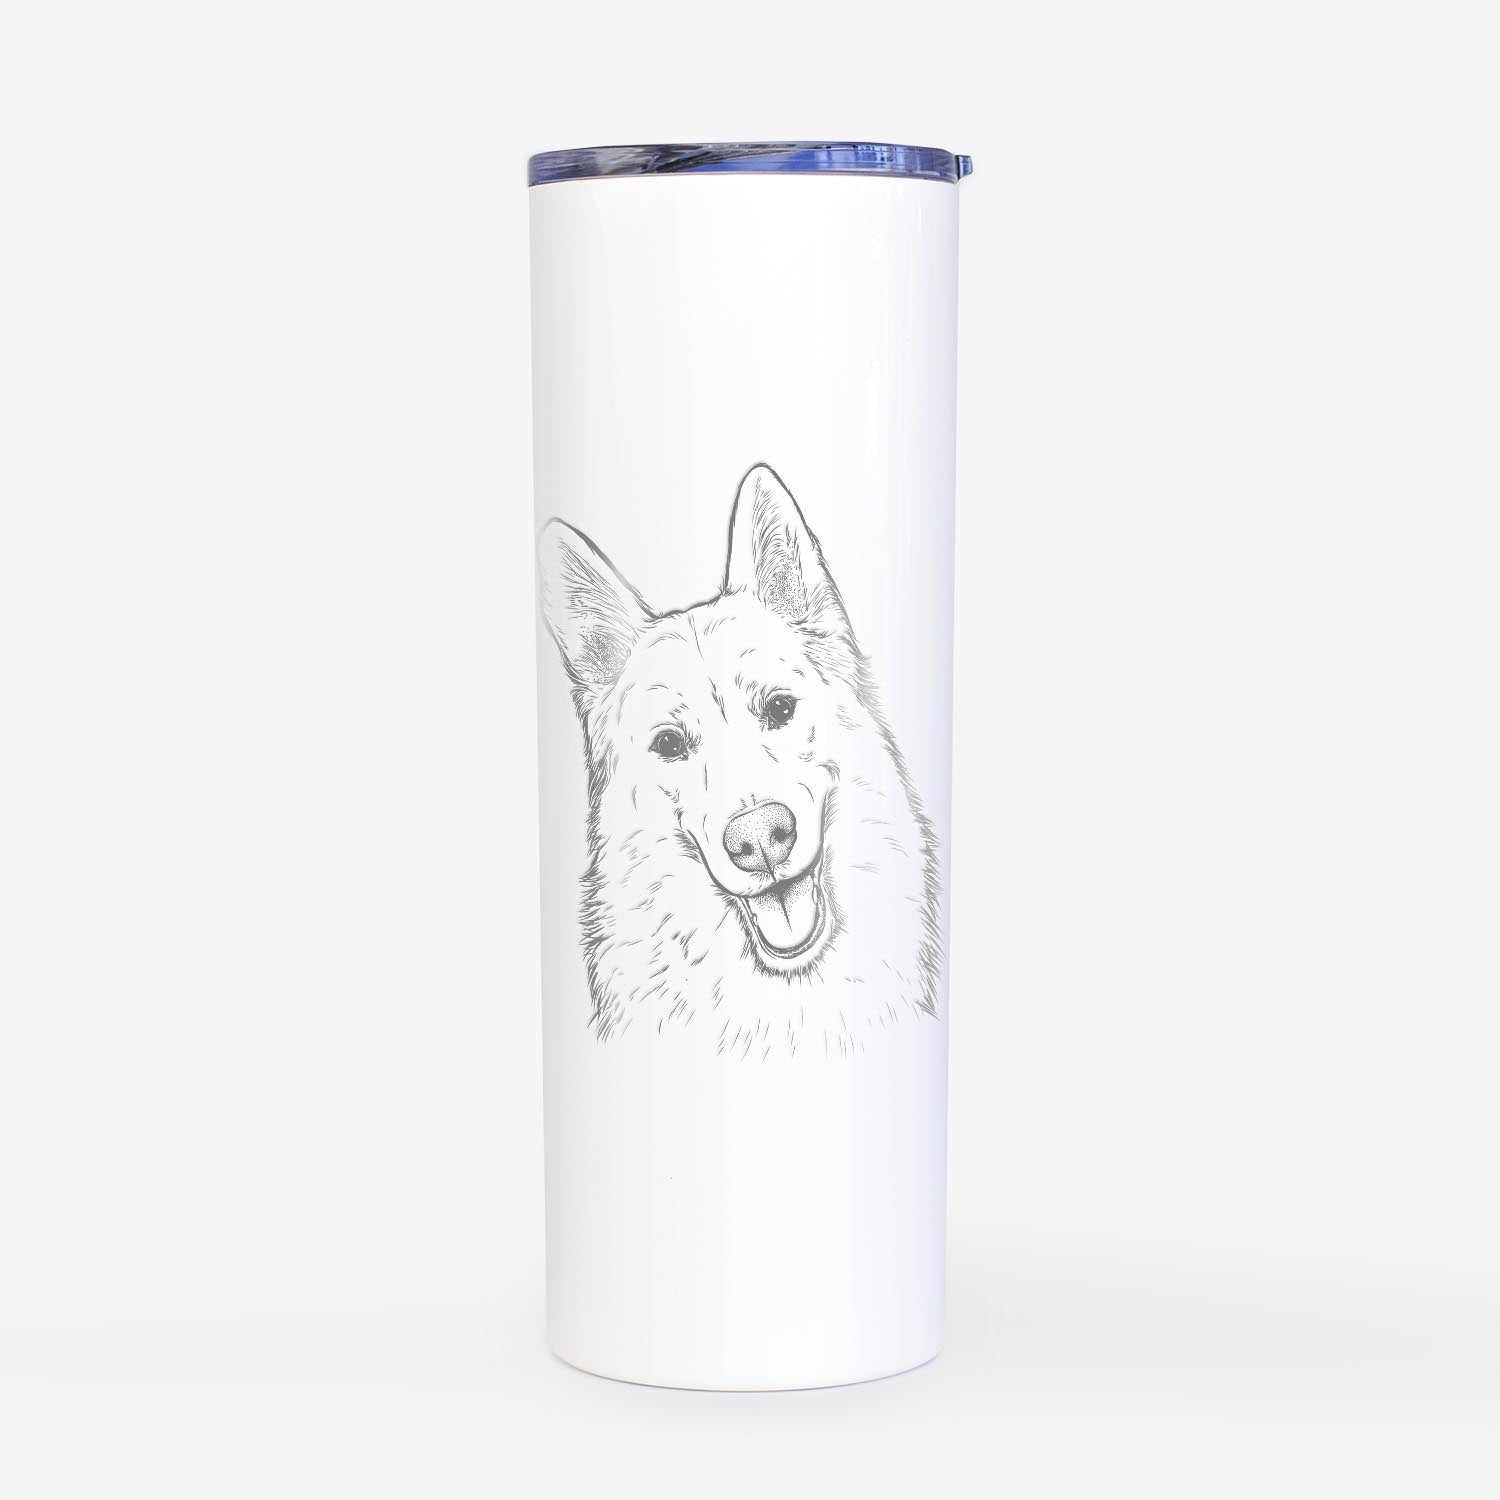 Loki the Husky Shepherd Mix - 20oz Skinny Tumbler